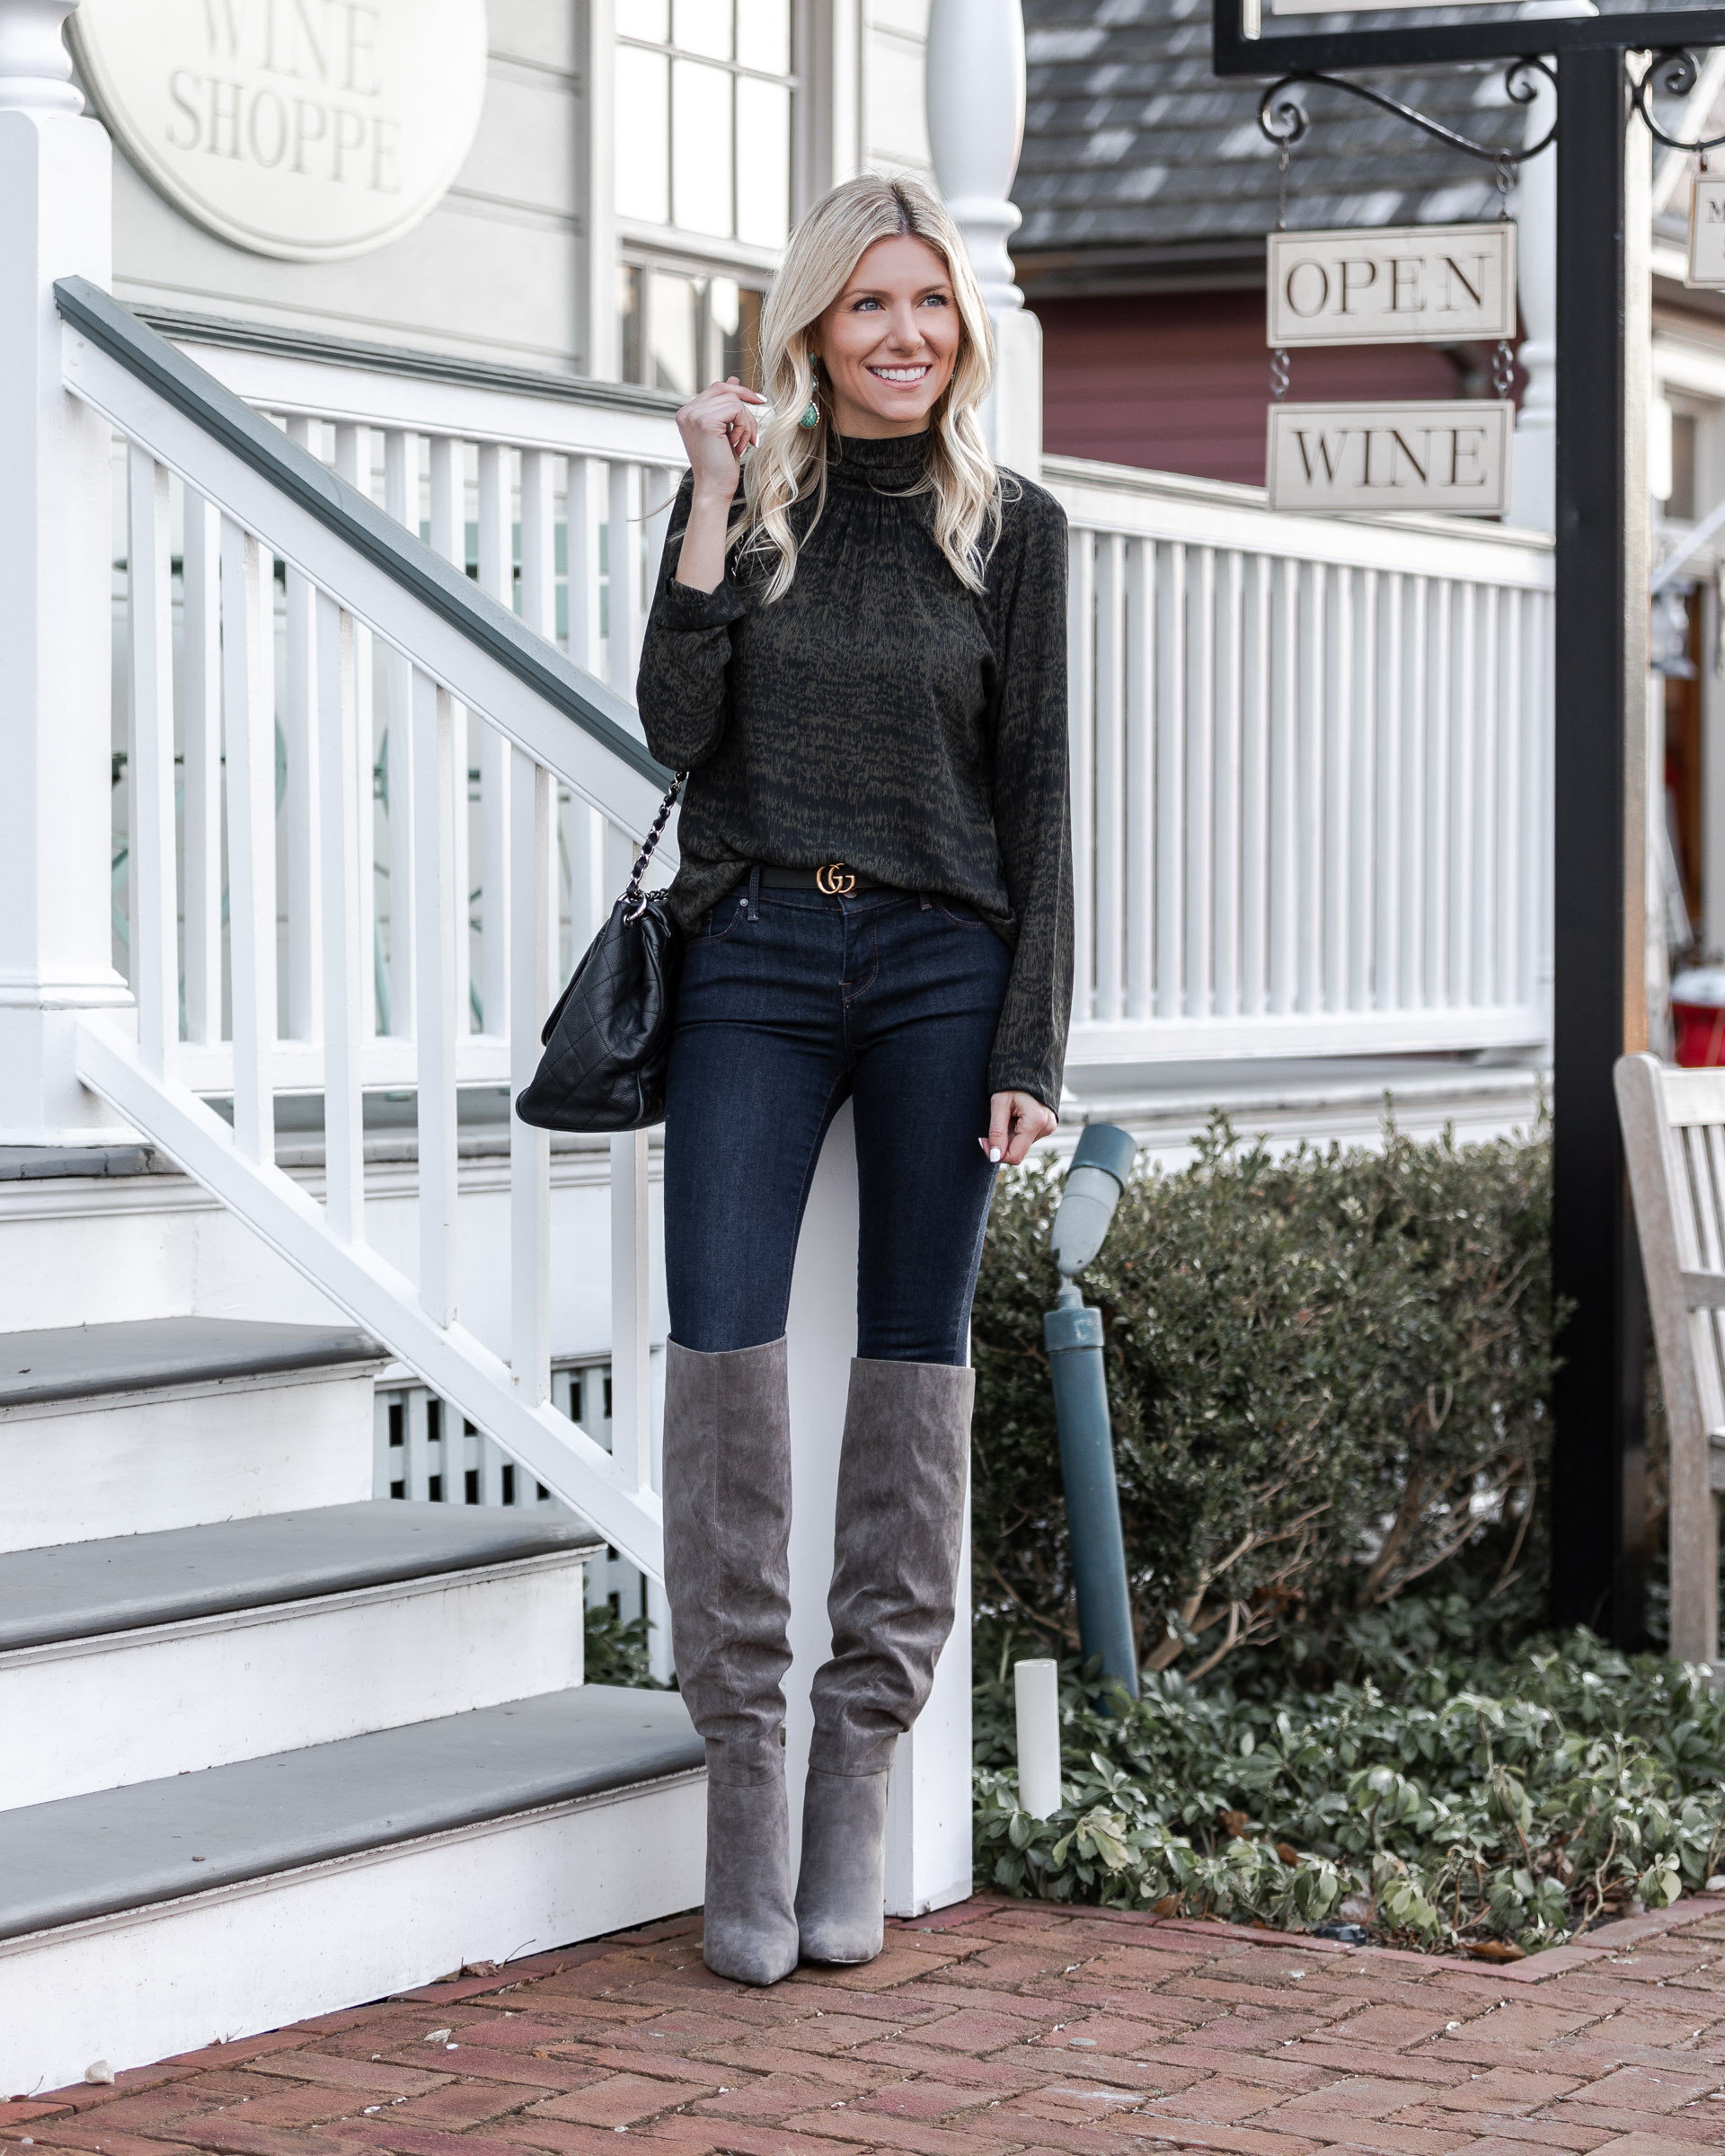 high-neck-blouse-and-over-the-knee-boots-the-glamorous-gal